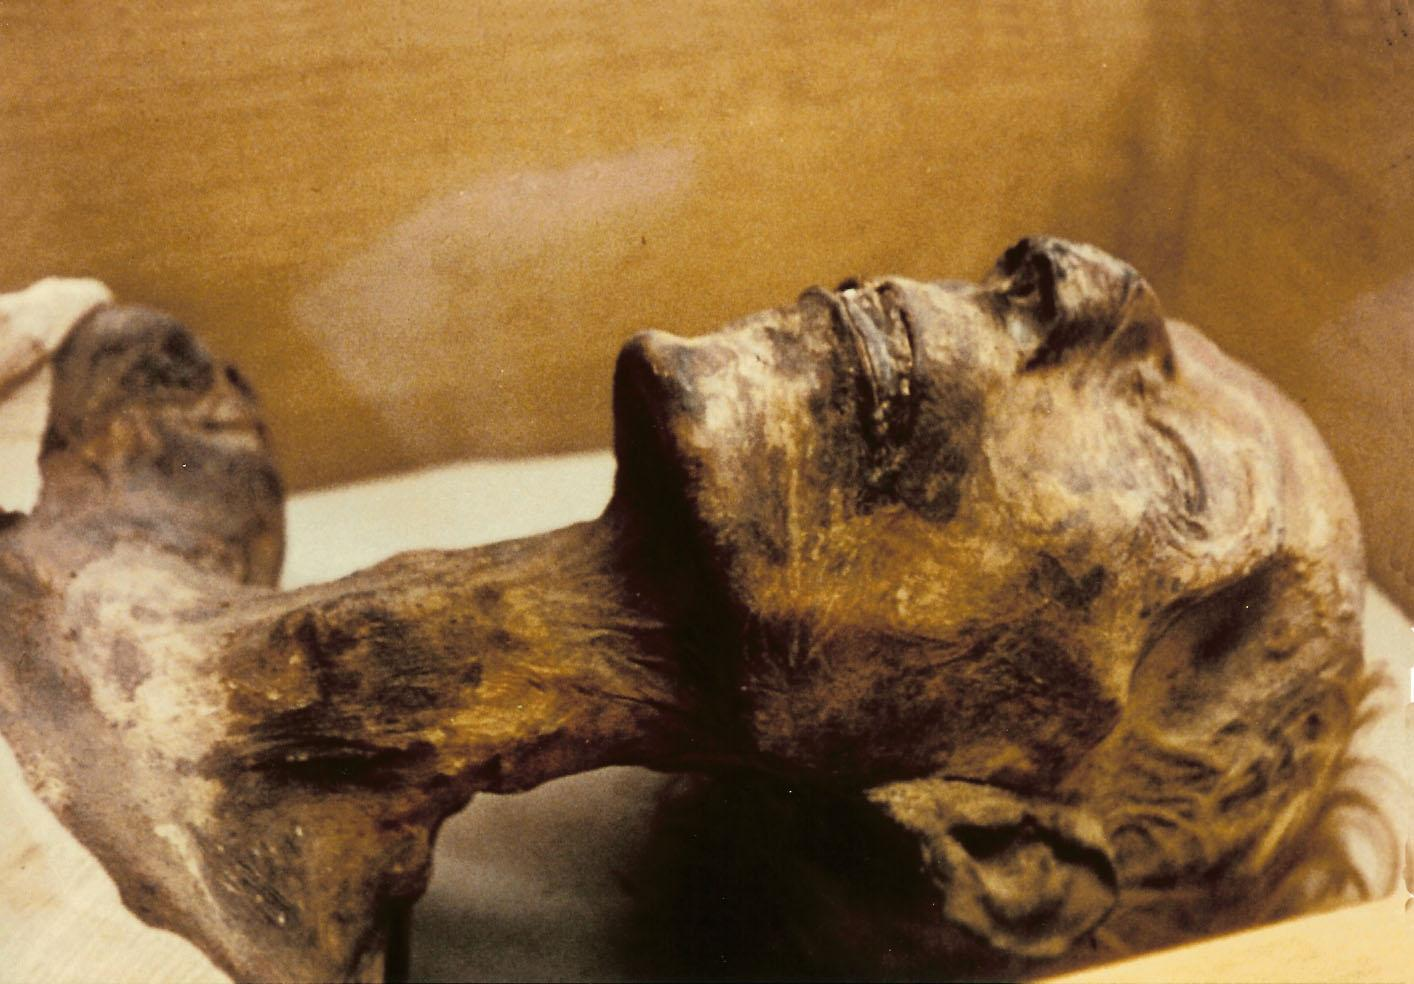 Mummy_of_Ramesses_II.jpg